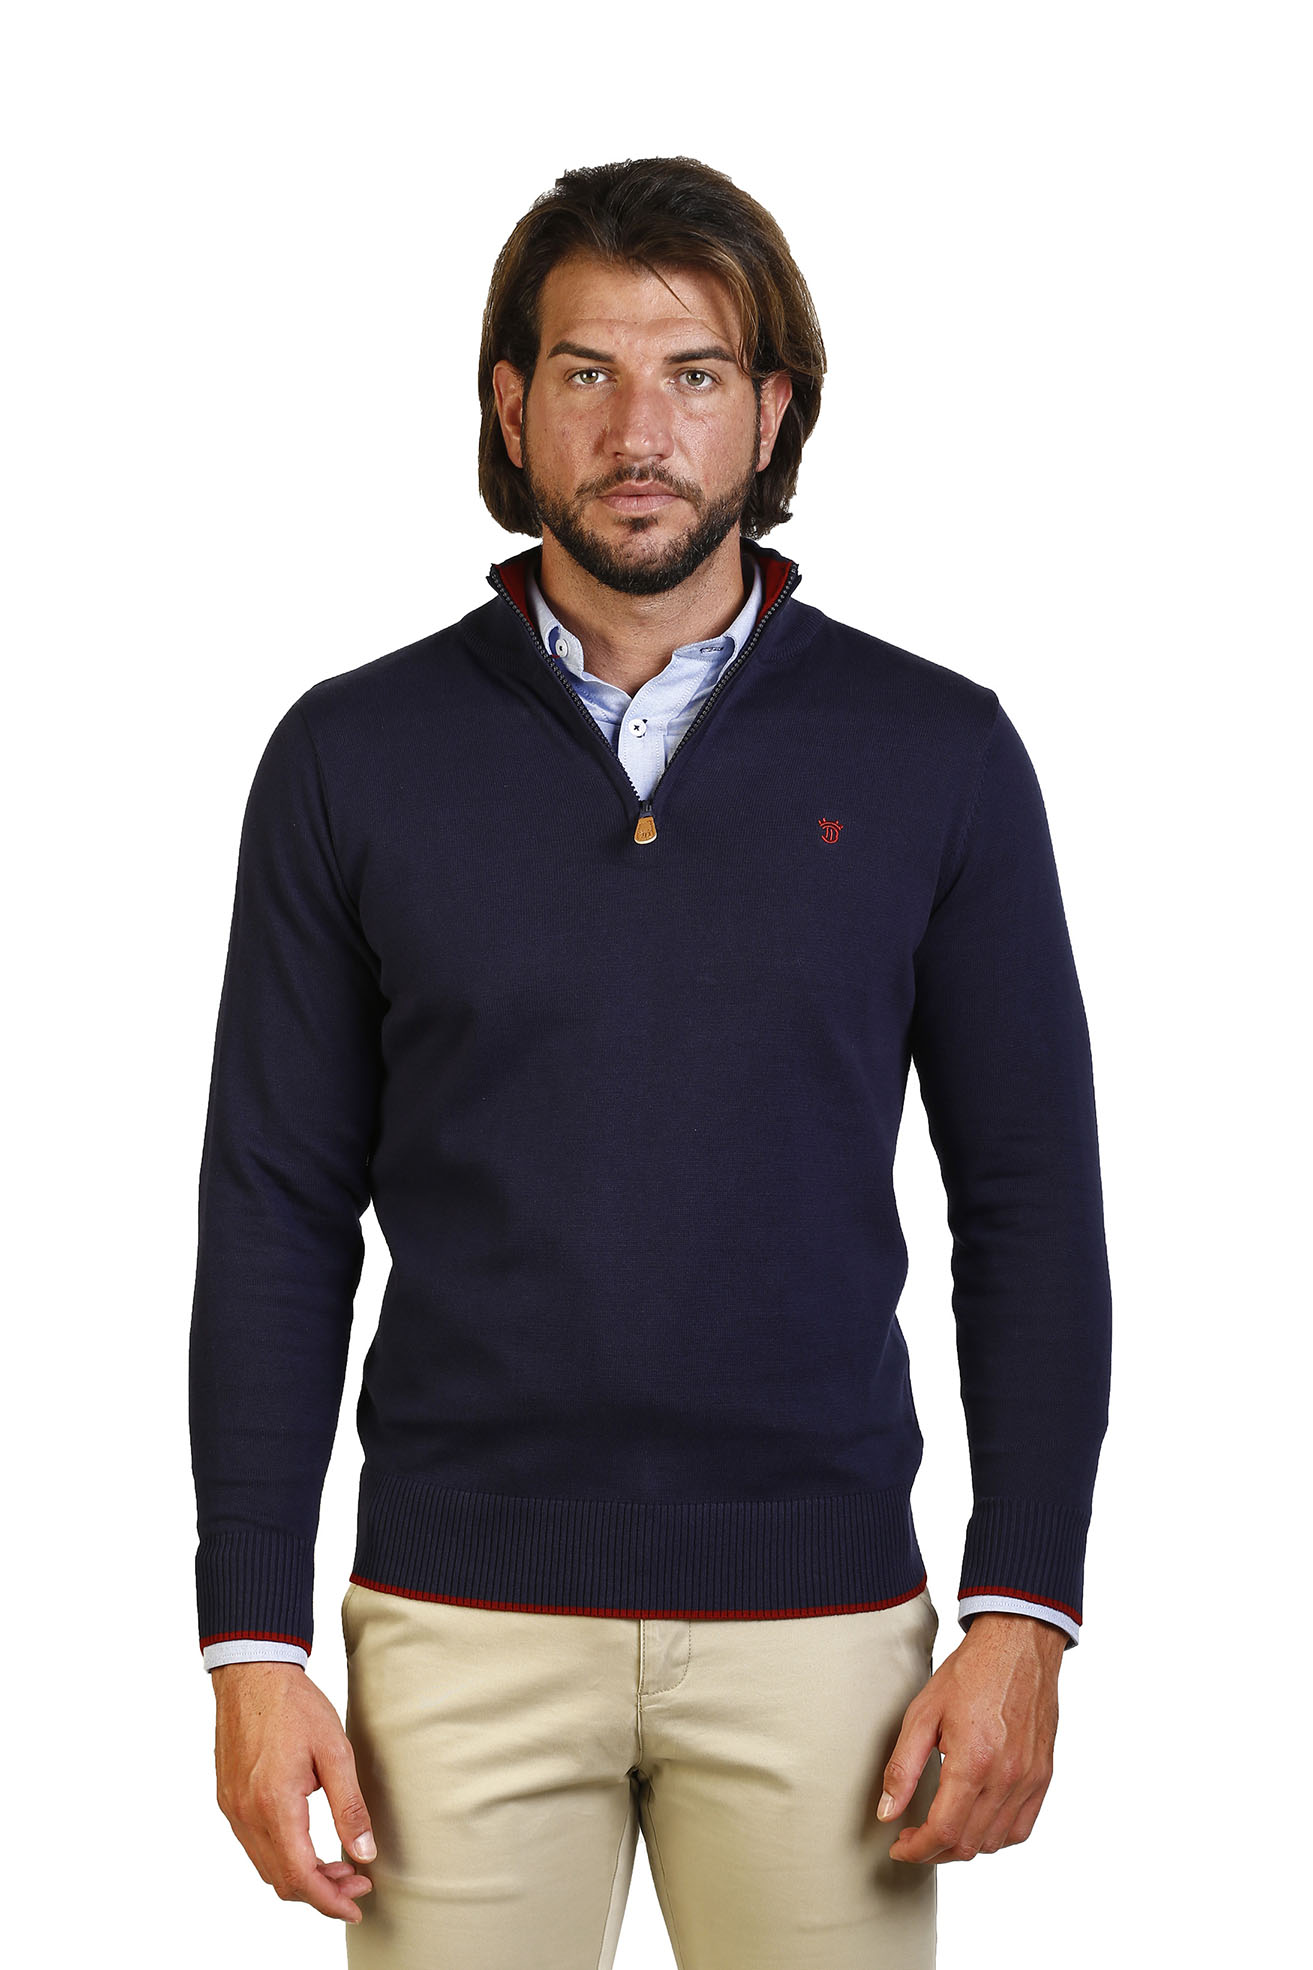 The Time Of Noggin Jersey Neck Collar Zipper Length Algodon Navy Men